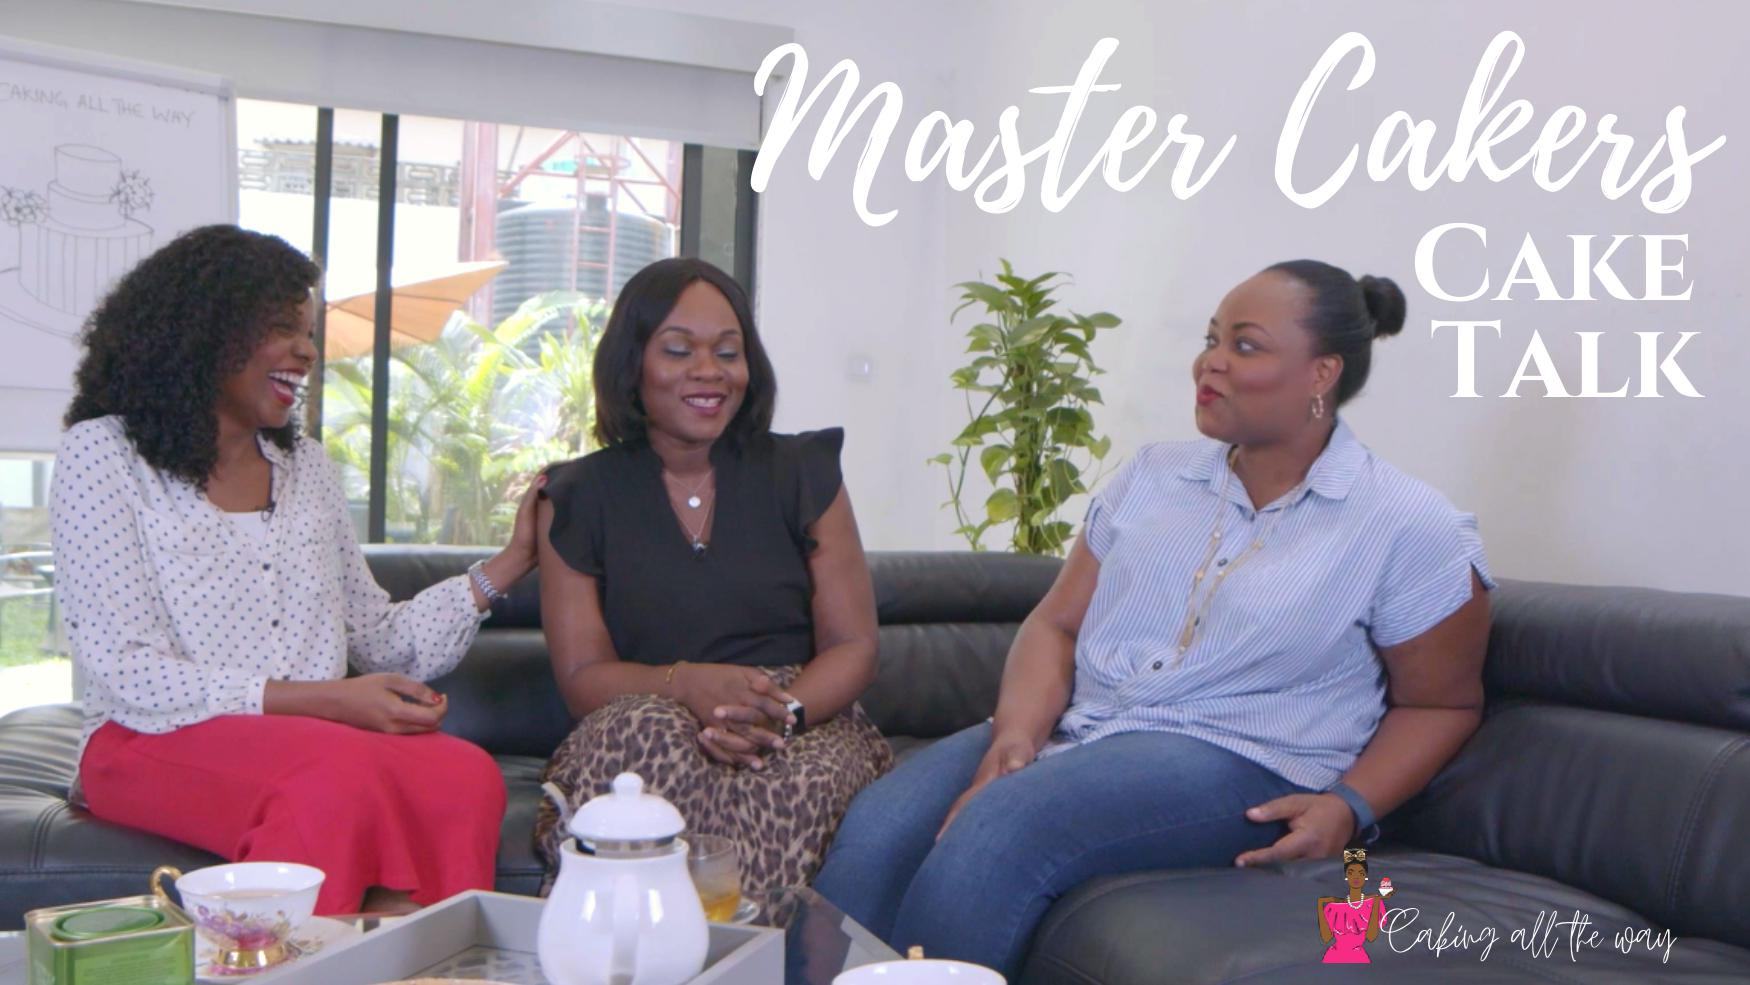 Cake Talk with Leading Cake Artists Part 1